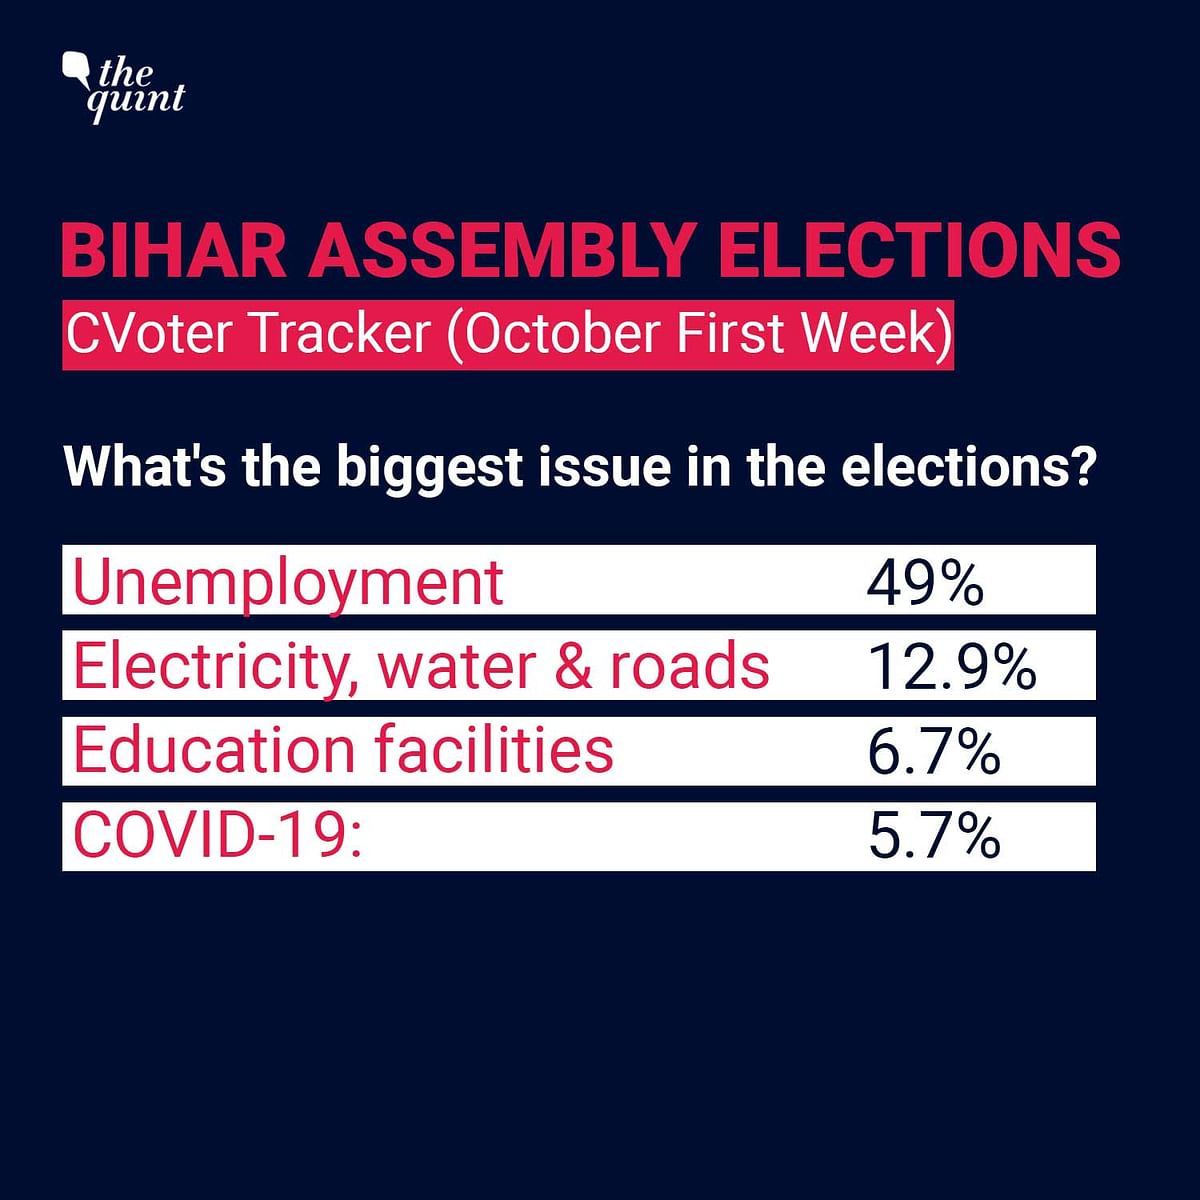 Bihar: Latest Opinion Poll Reveals the Dangers of Seat Prediction